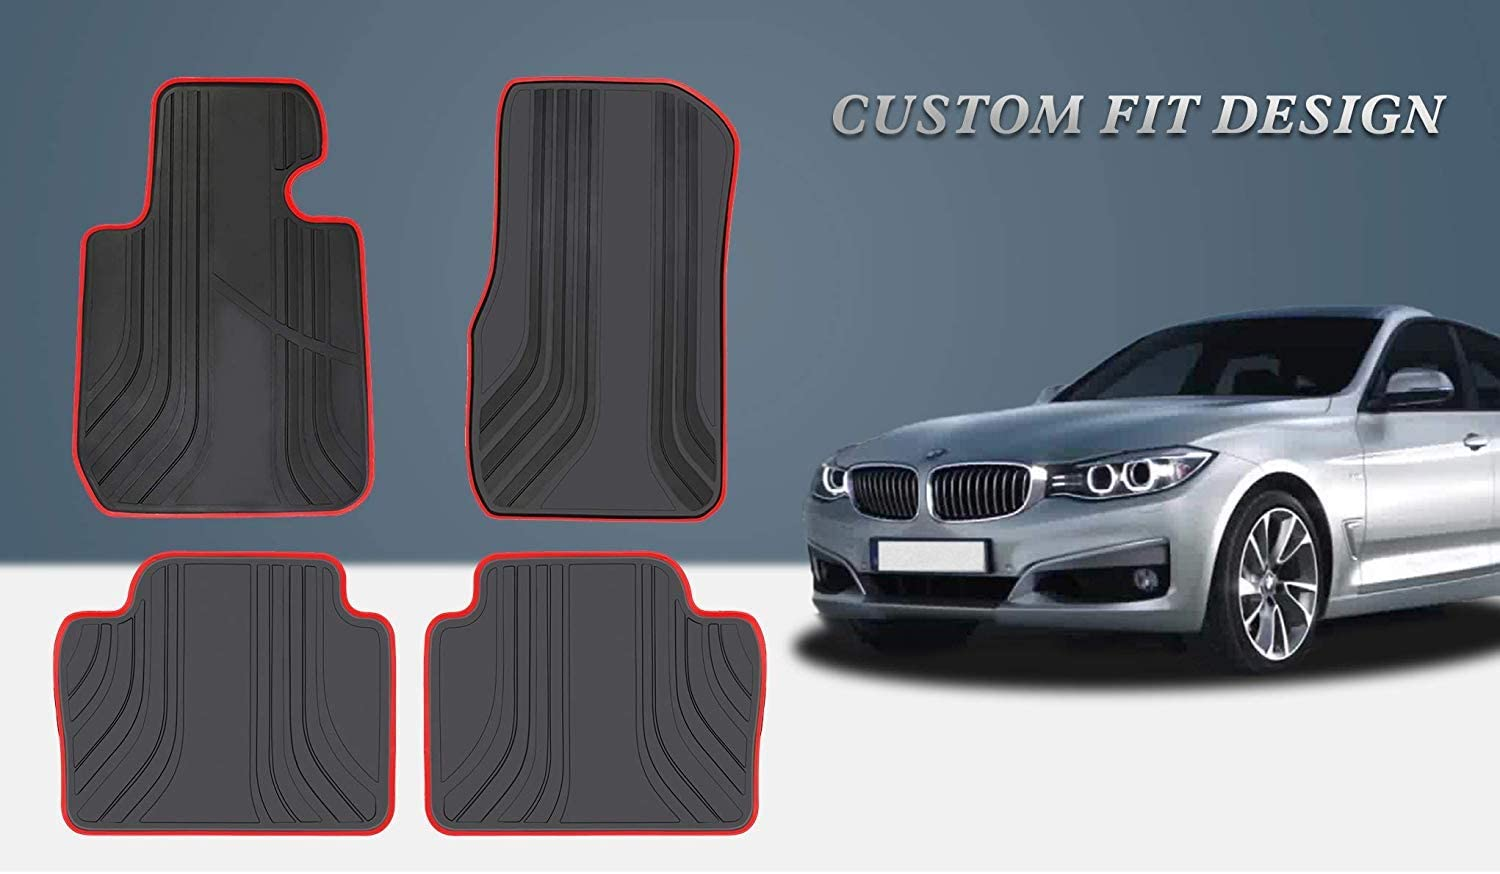 San Auto Car Floor Mat for BMW 3//4 Series F30 F31 F32 F33 F36 2012-2013-2014-2015-2016-2017-2018 Black and Navy Blue Auto Rubber Floor Liner Carpet All Weather Protection Heavy Duty Odorless